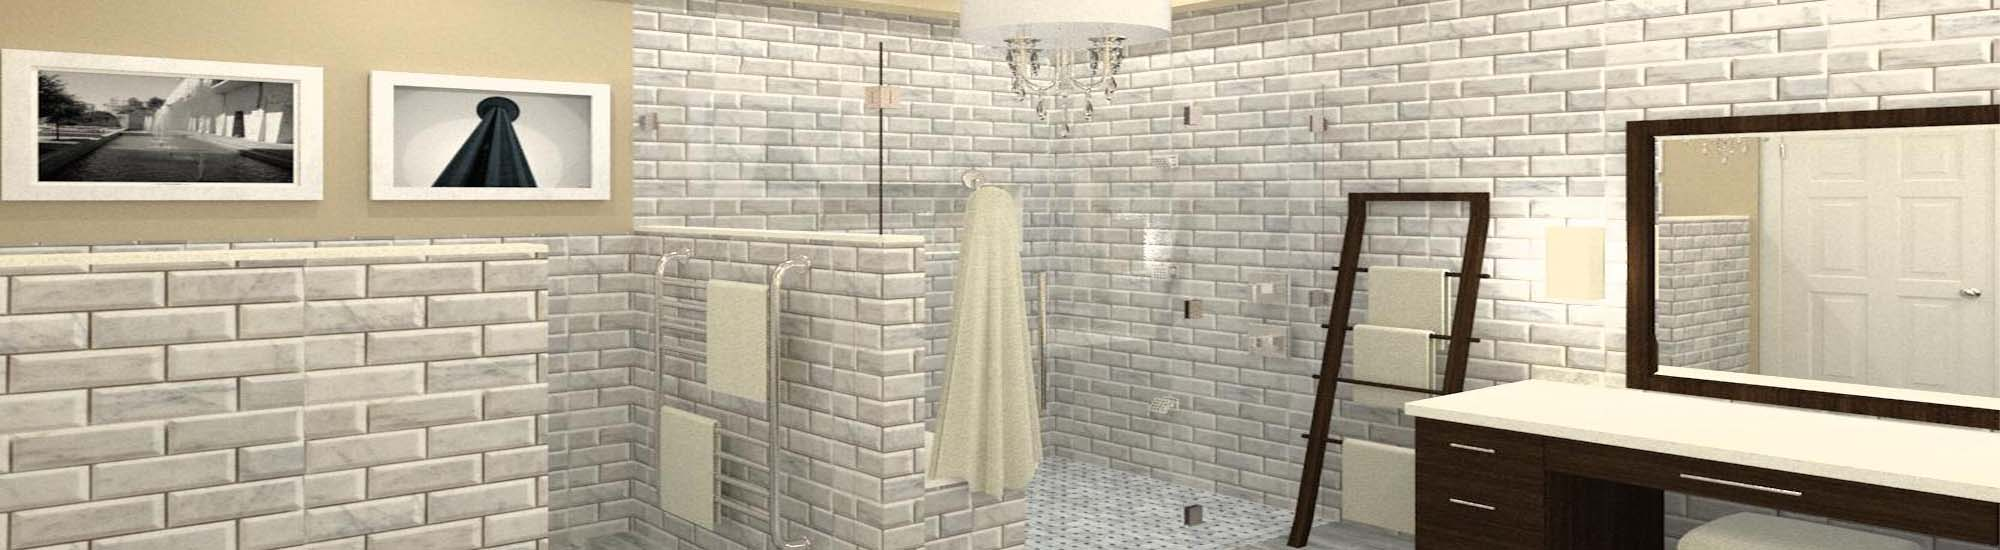 bathroom-cad-1-design-build-pros